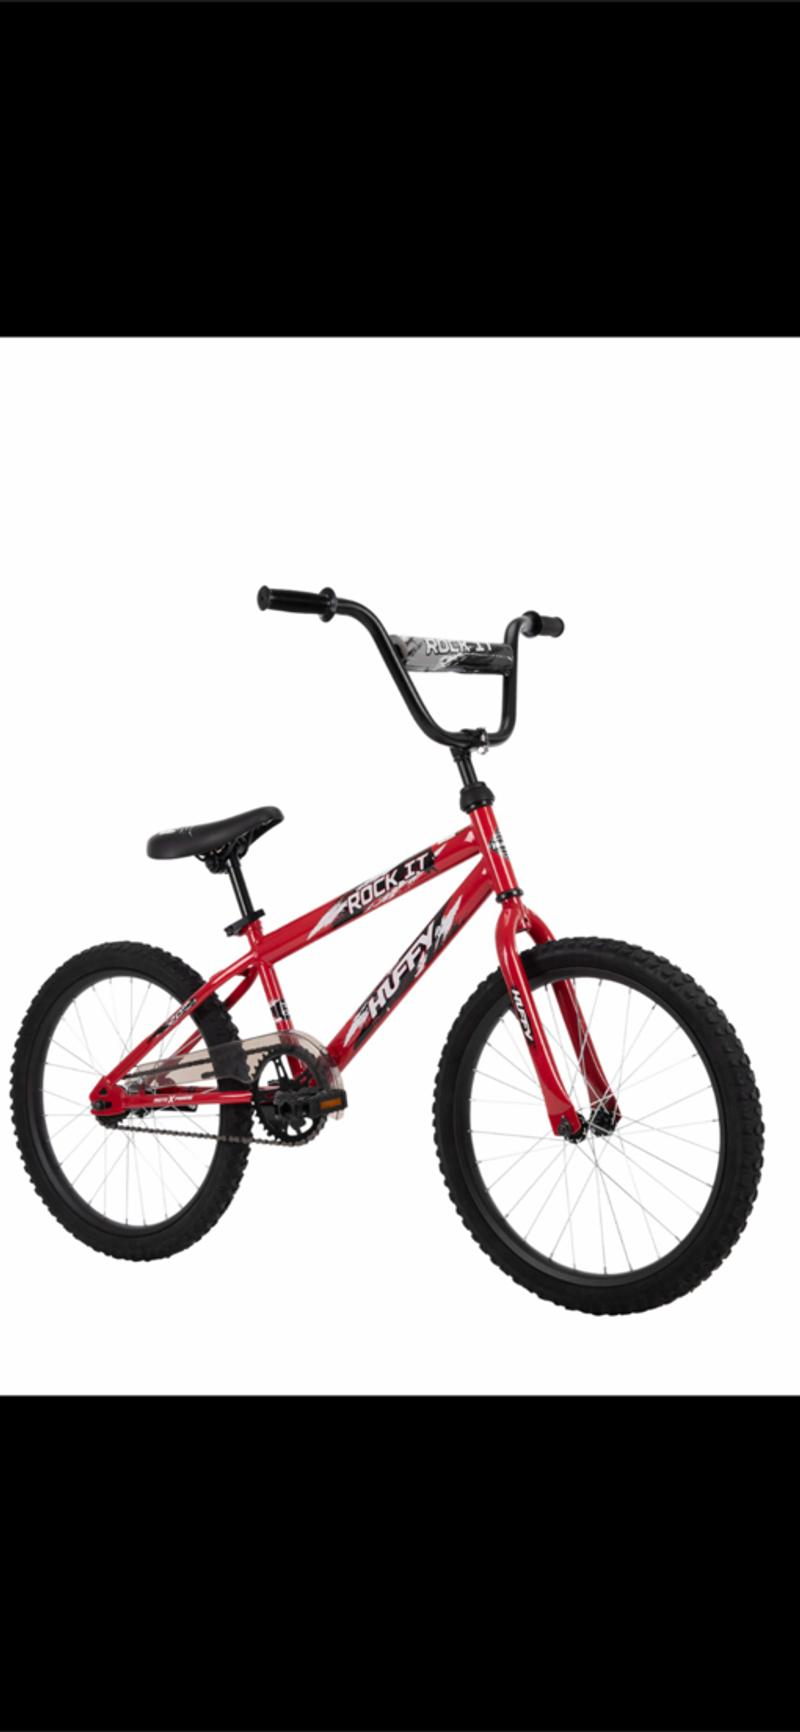 Photo NEW NEW NEW 20 inch Rock It Kids Bike for Boys Hot Red